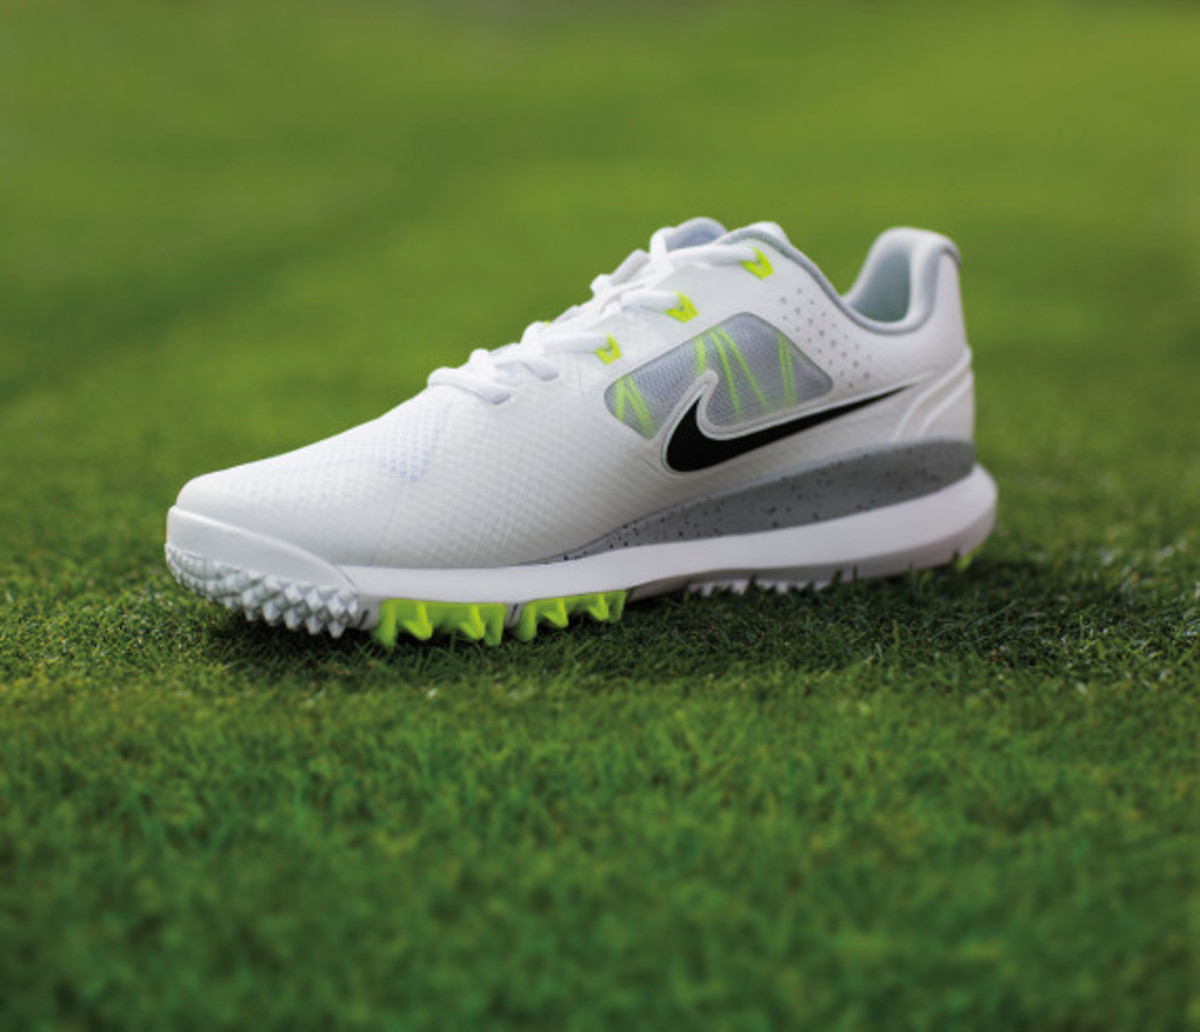 nike-tw-14-mesh-breathable-and-lightweight-golf-shoe-02